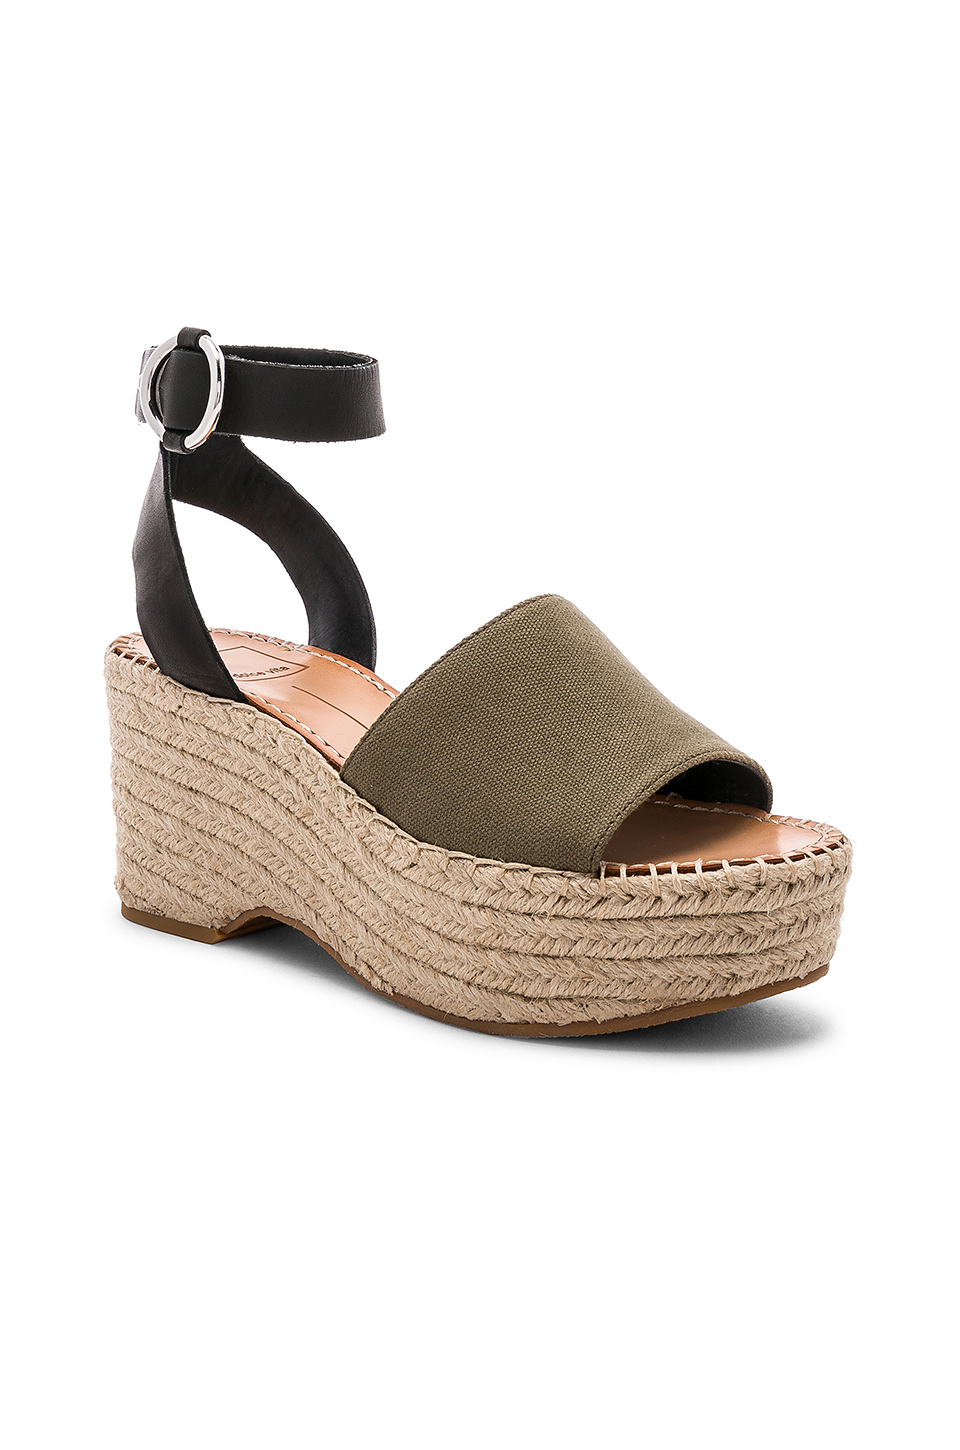 debf73905f04 Buy Original Dolce Vita Lesly Wedge at Indonesia